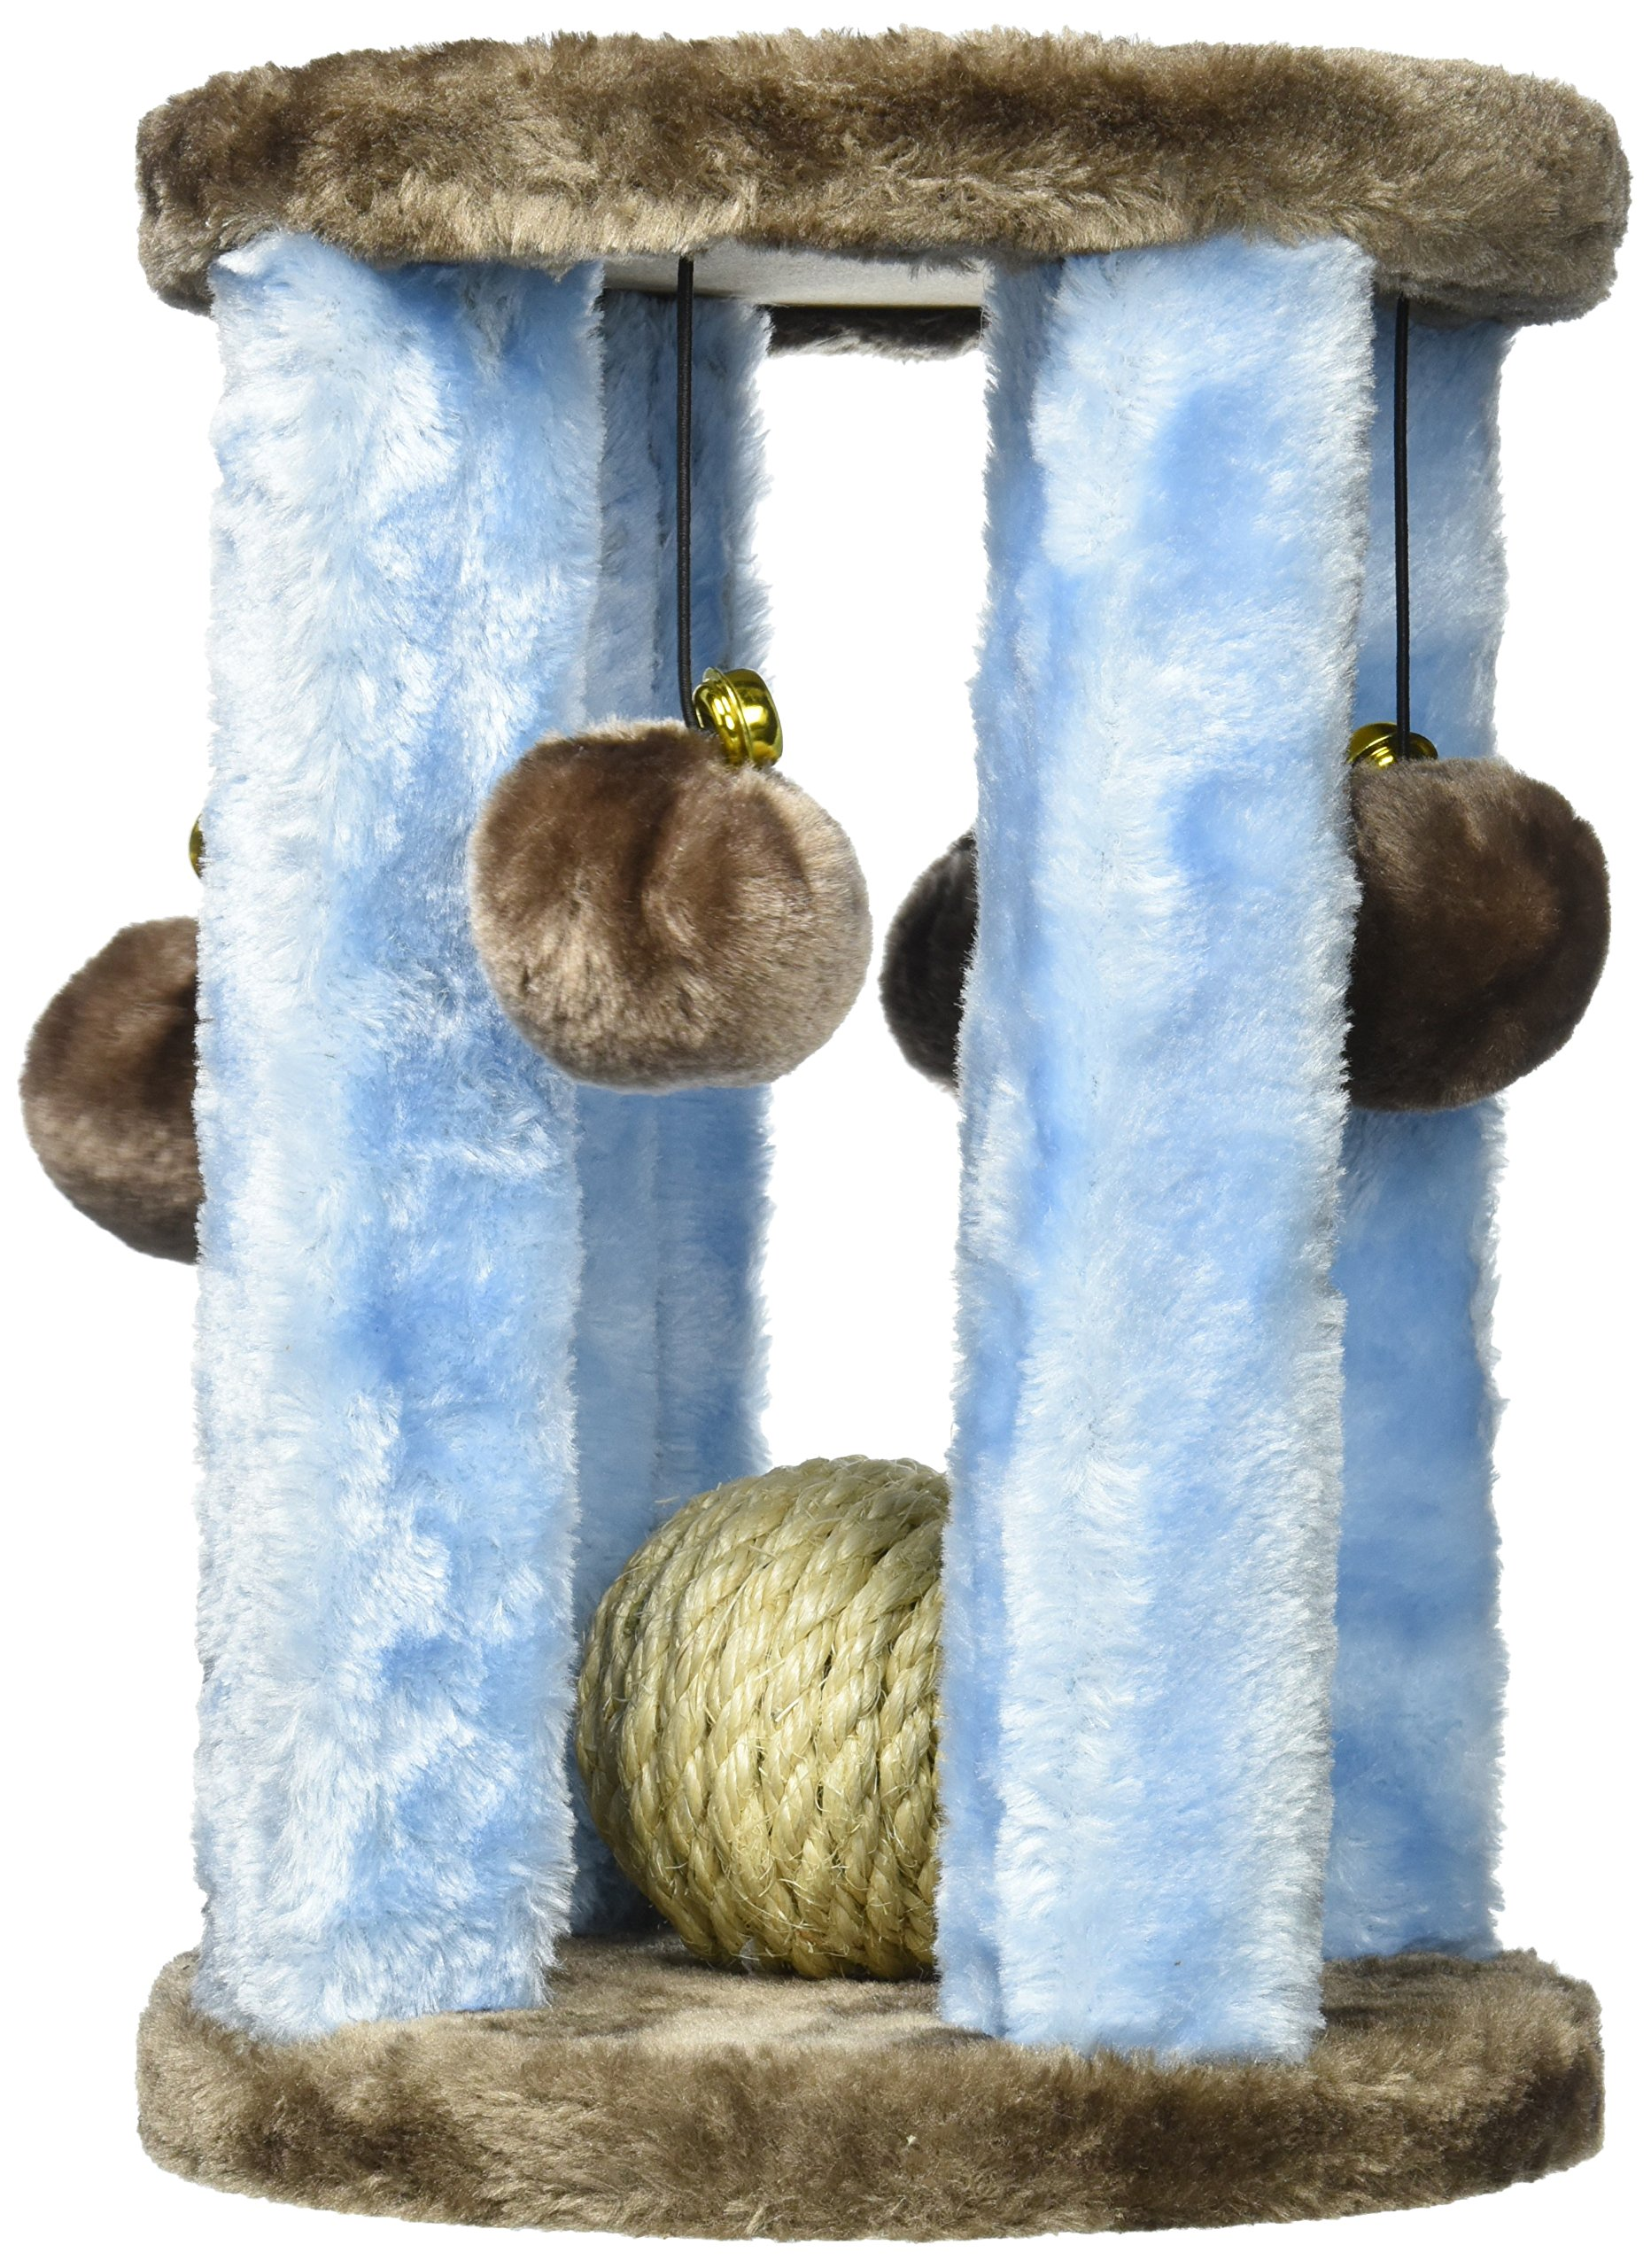 Penn Plax Cat Toy Activity Center with Sisal Ball, Bells and Swatting Balls, 11 Inches High